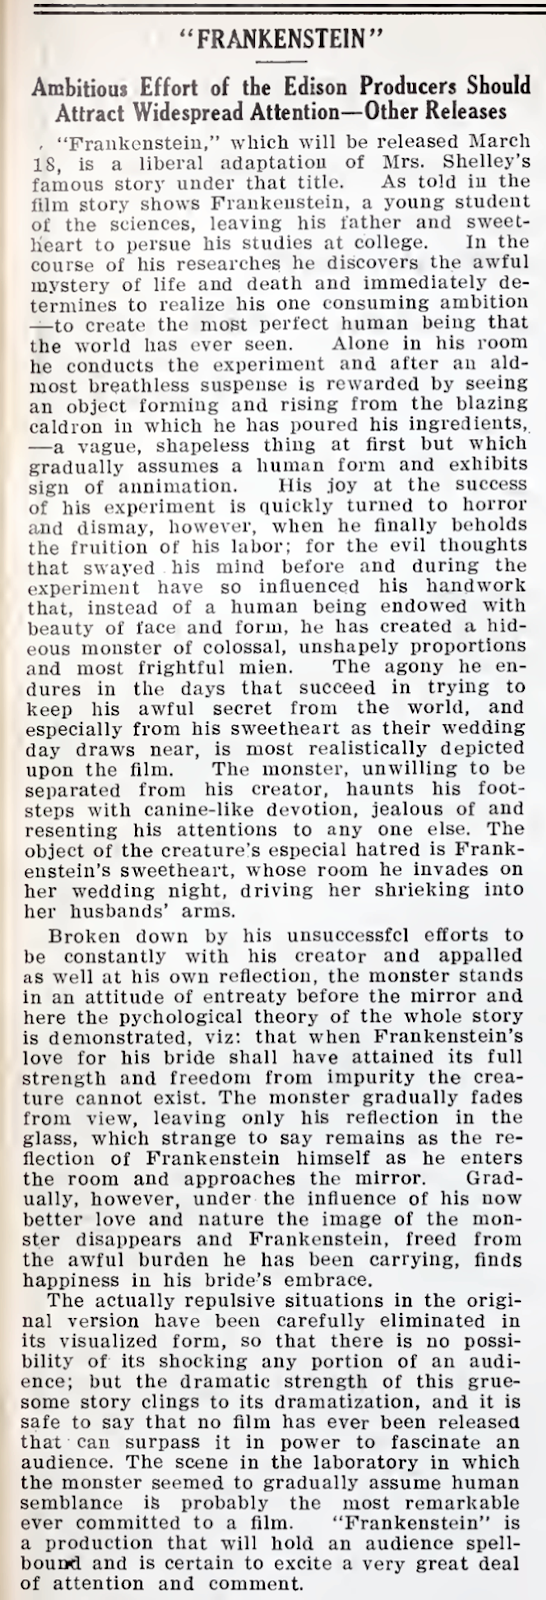 Frankenstein announcement March 12, 1910